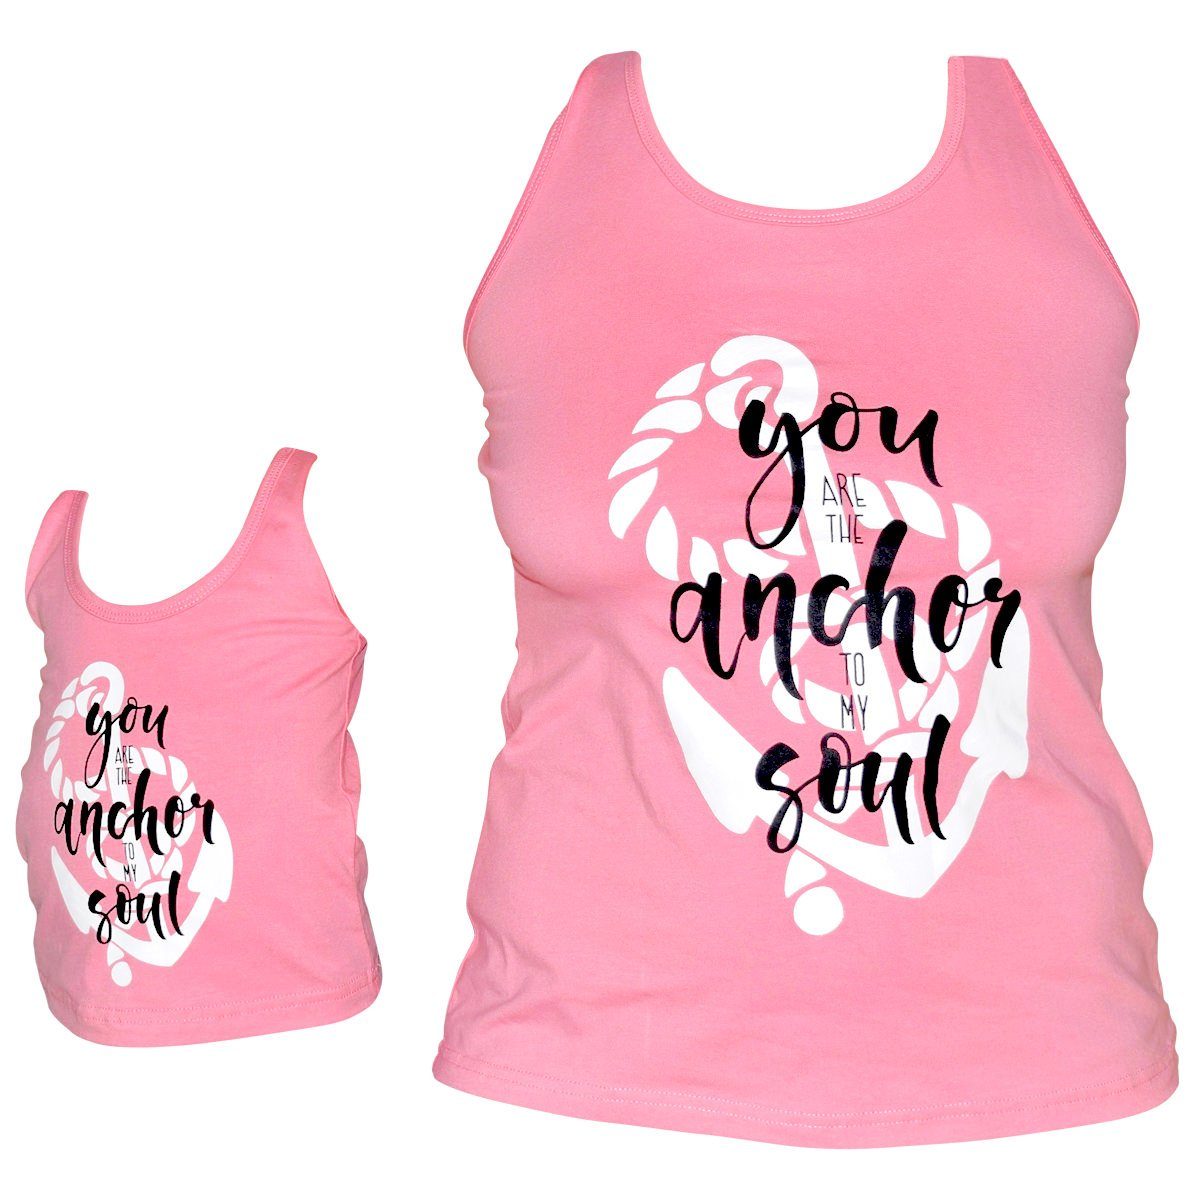 Unique Baby Girls Mommy & Me Racerback Anchor Tank Tops